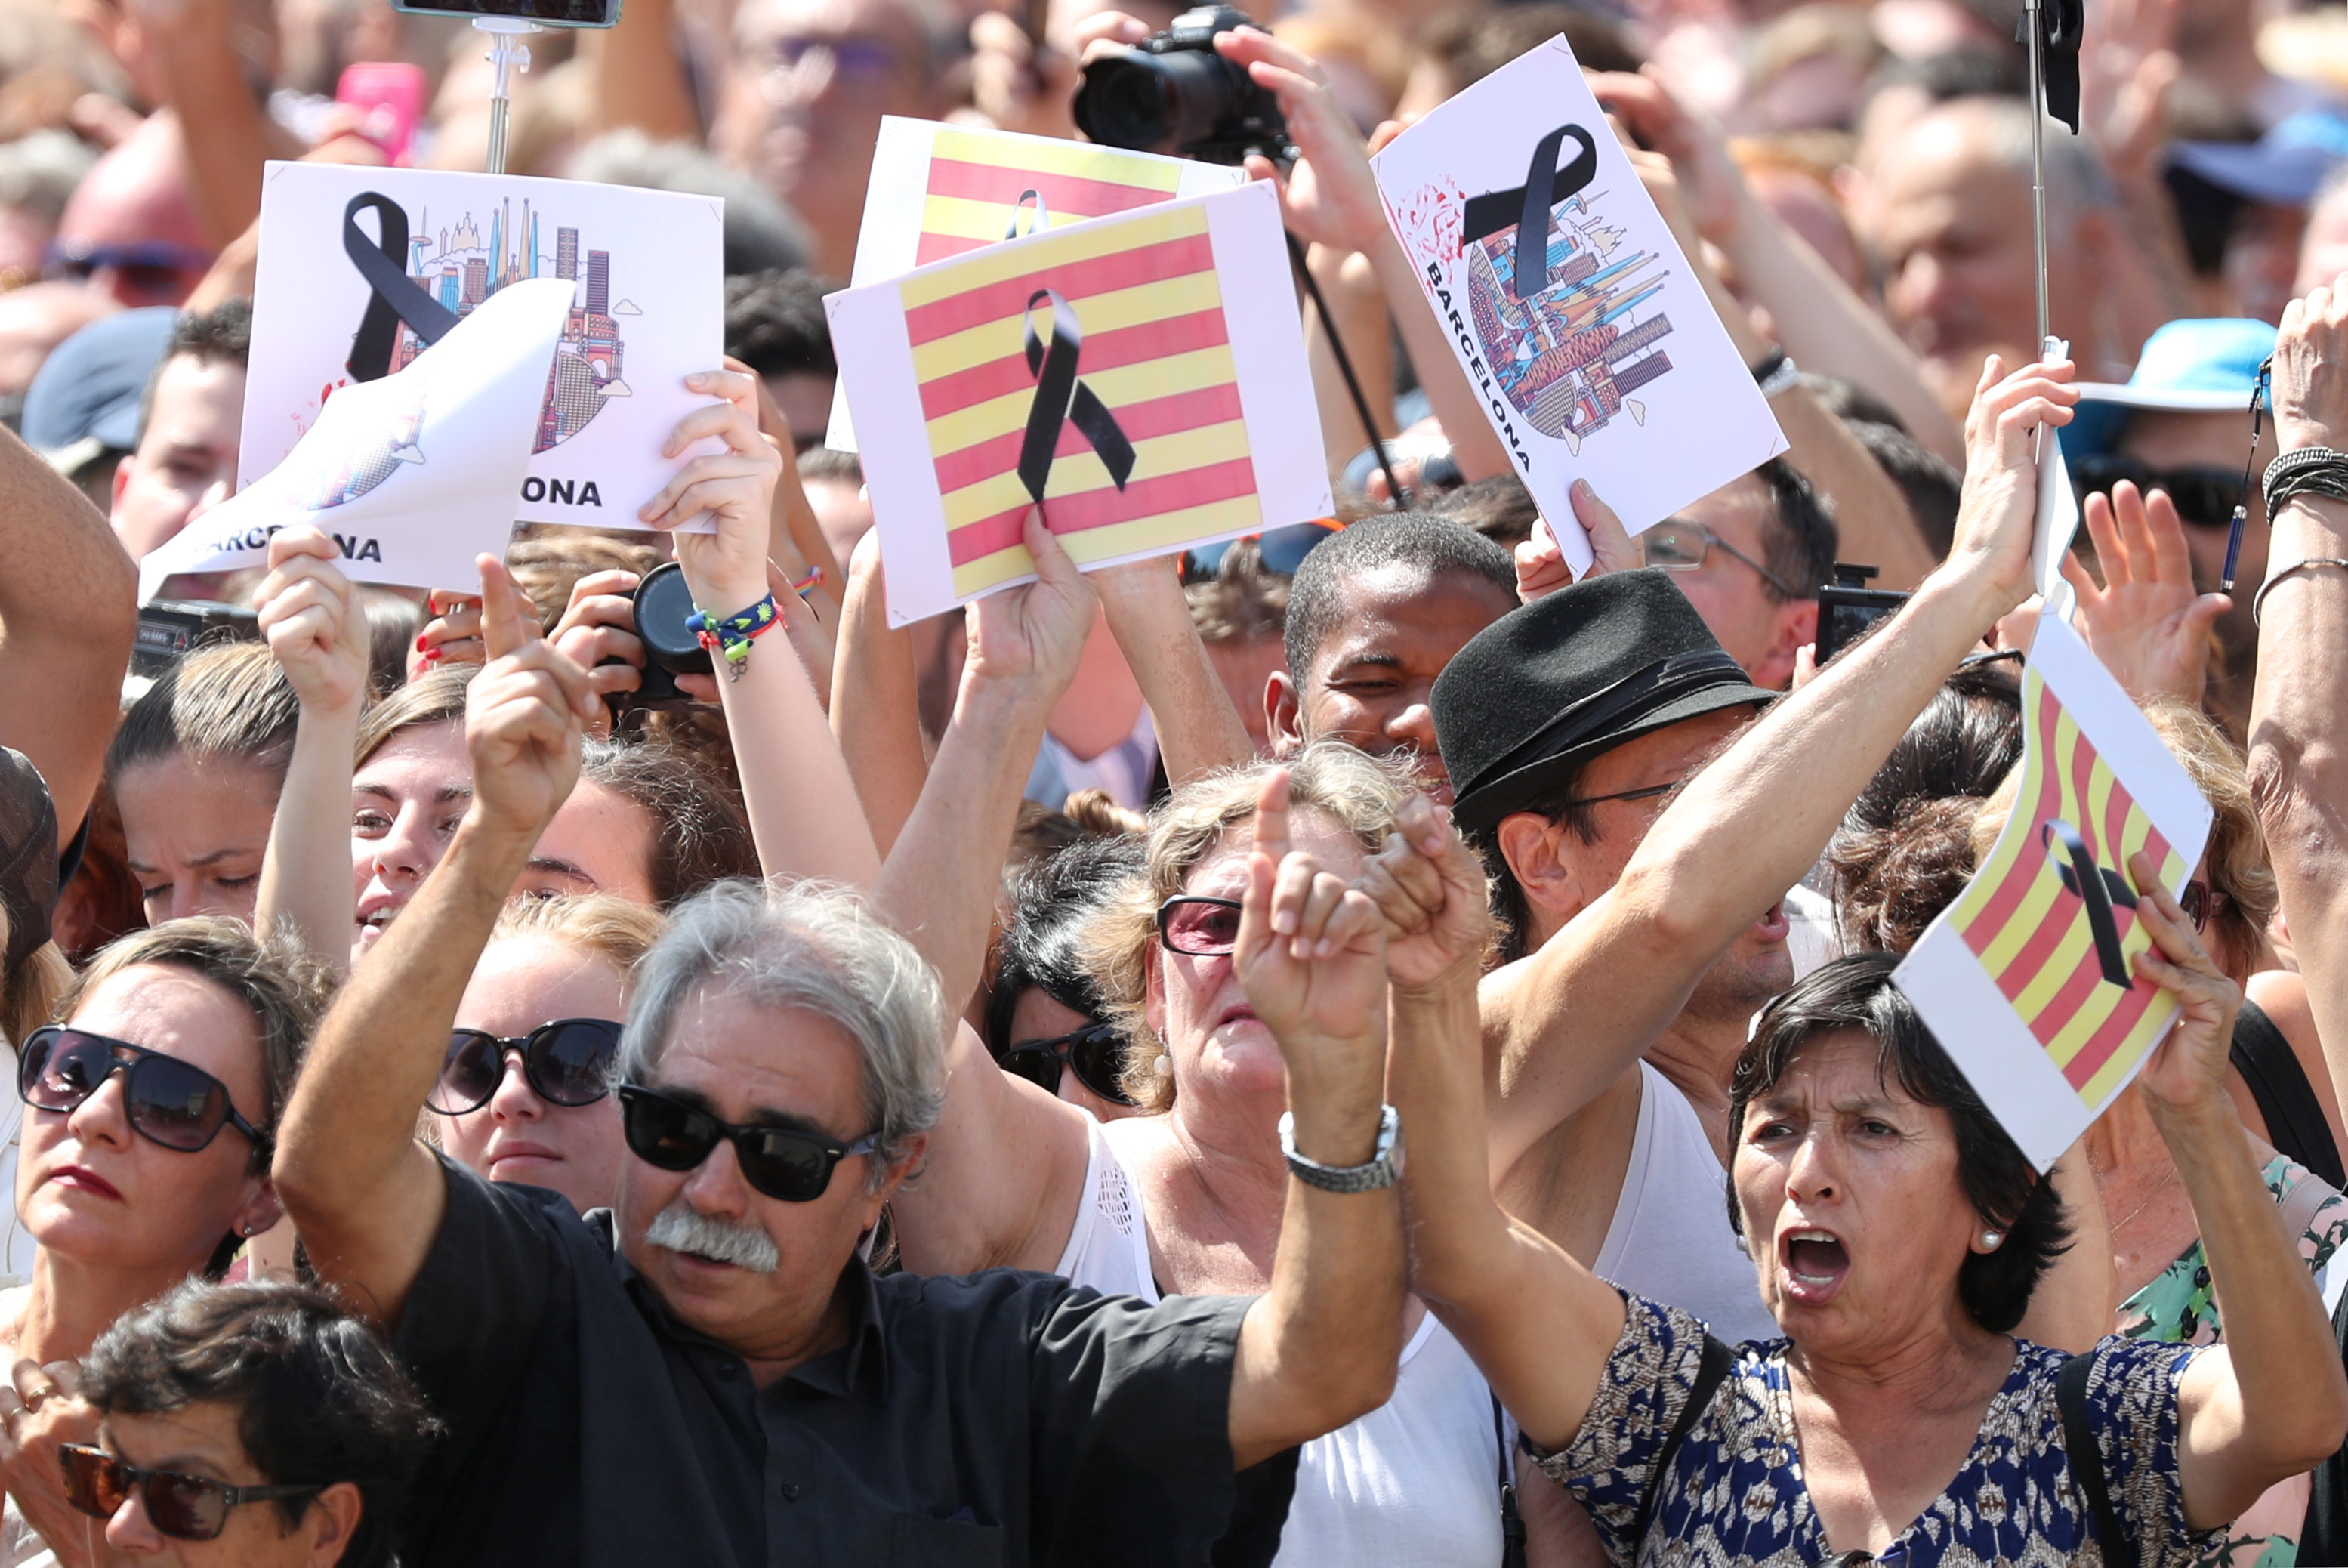 People hold banners as they observe a minute of silence in Placa de Catalunya, a day after a van crashed into pedestrians at Las Ramblas in Barcelona, Spain August 18, 2017. (REUTERS/Sergio Perez)